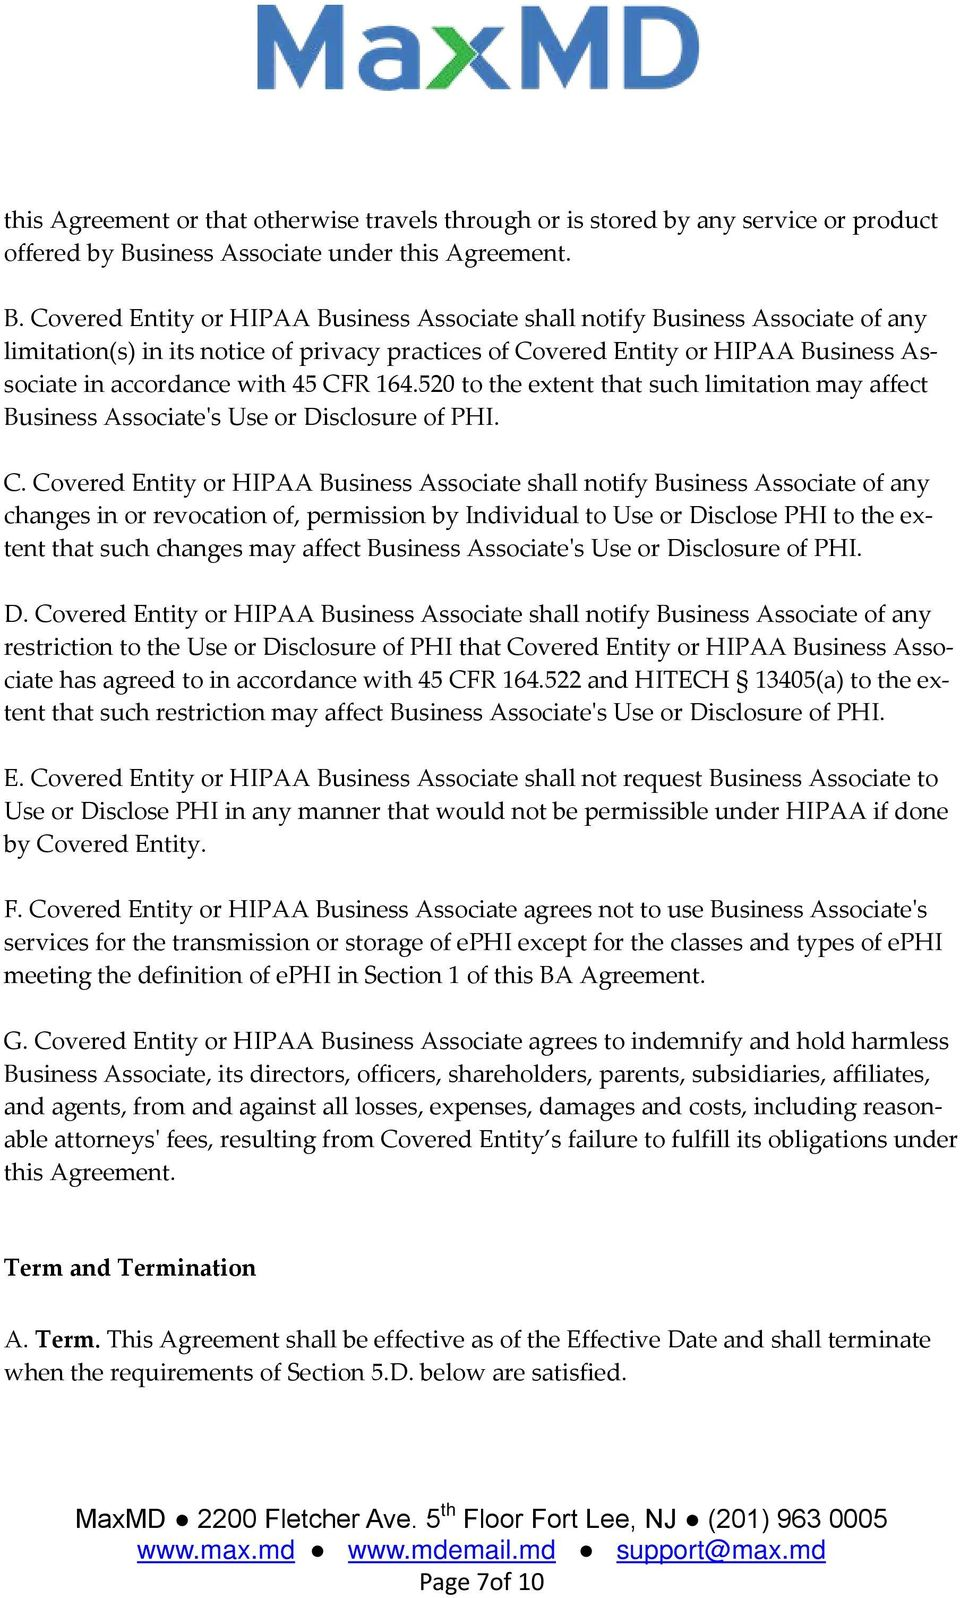 Covered Entity or HIPAA Business Associate shall notify Business Associate of any limitation(s) in its notice of privacy practices of Covered Entity or HIPAA Business Associate in accordance with 45